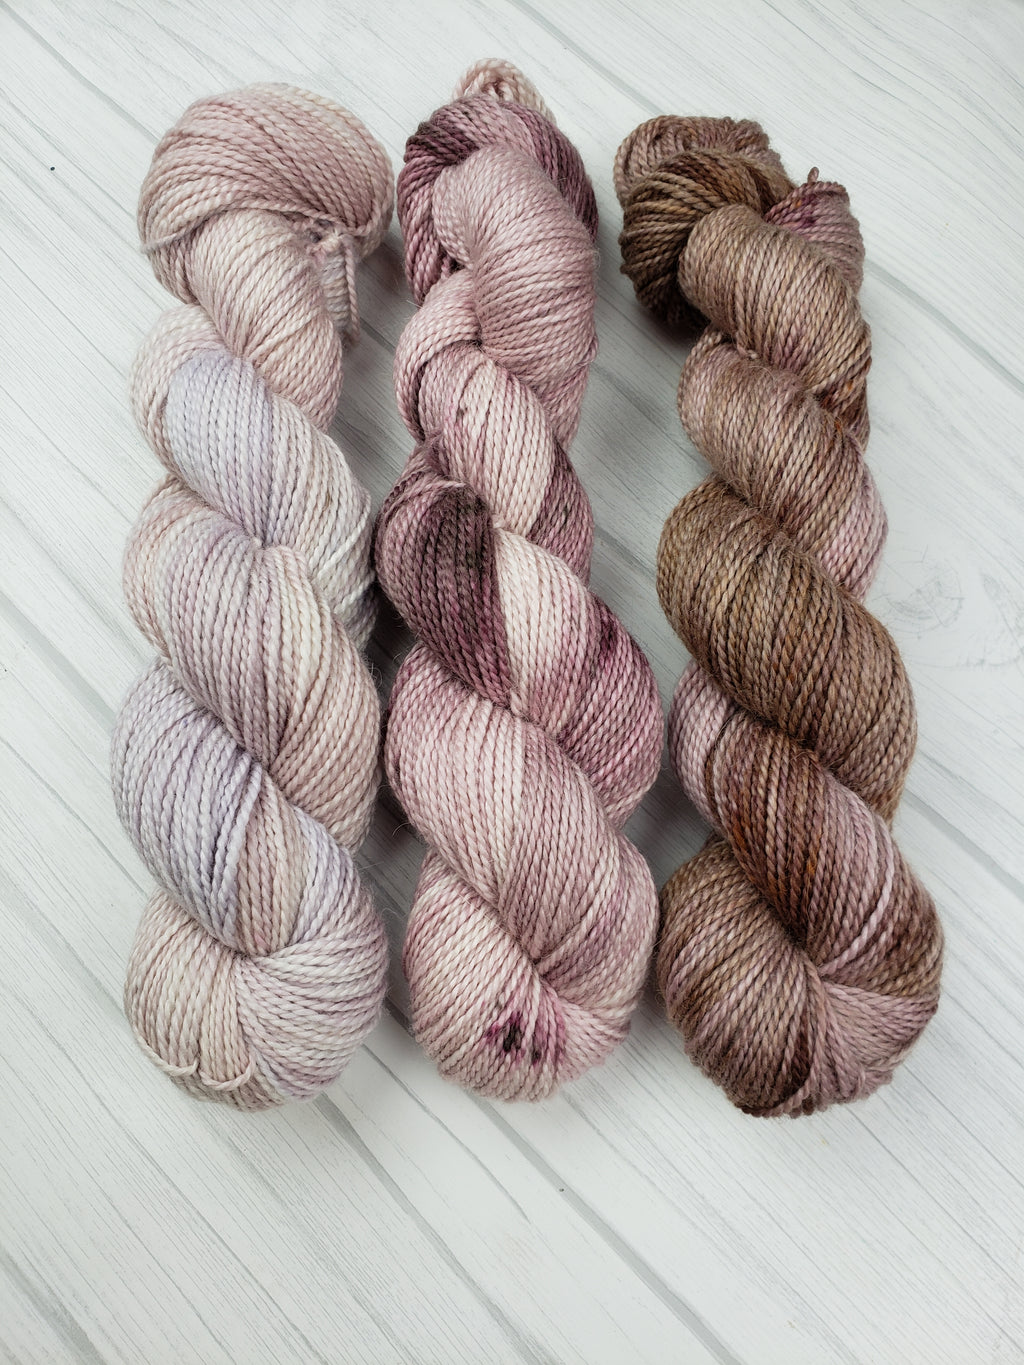 Plum Creek, Hand Dyed Fade Set on DK Weight - Spindle warps yarns